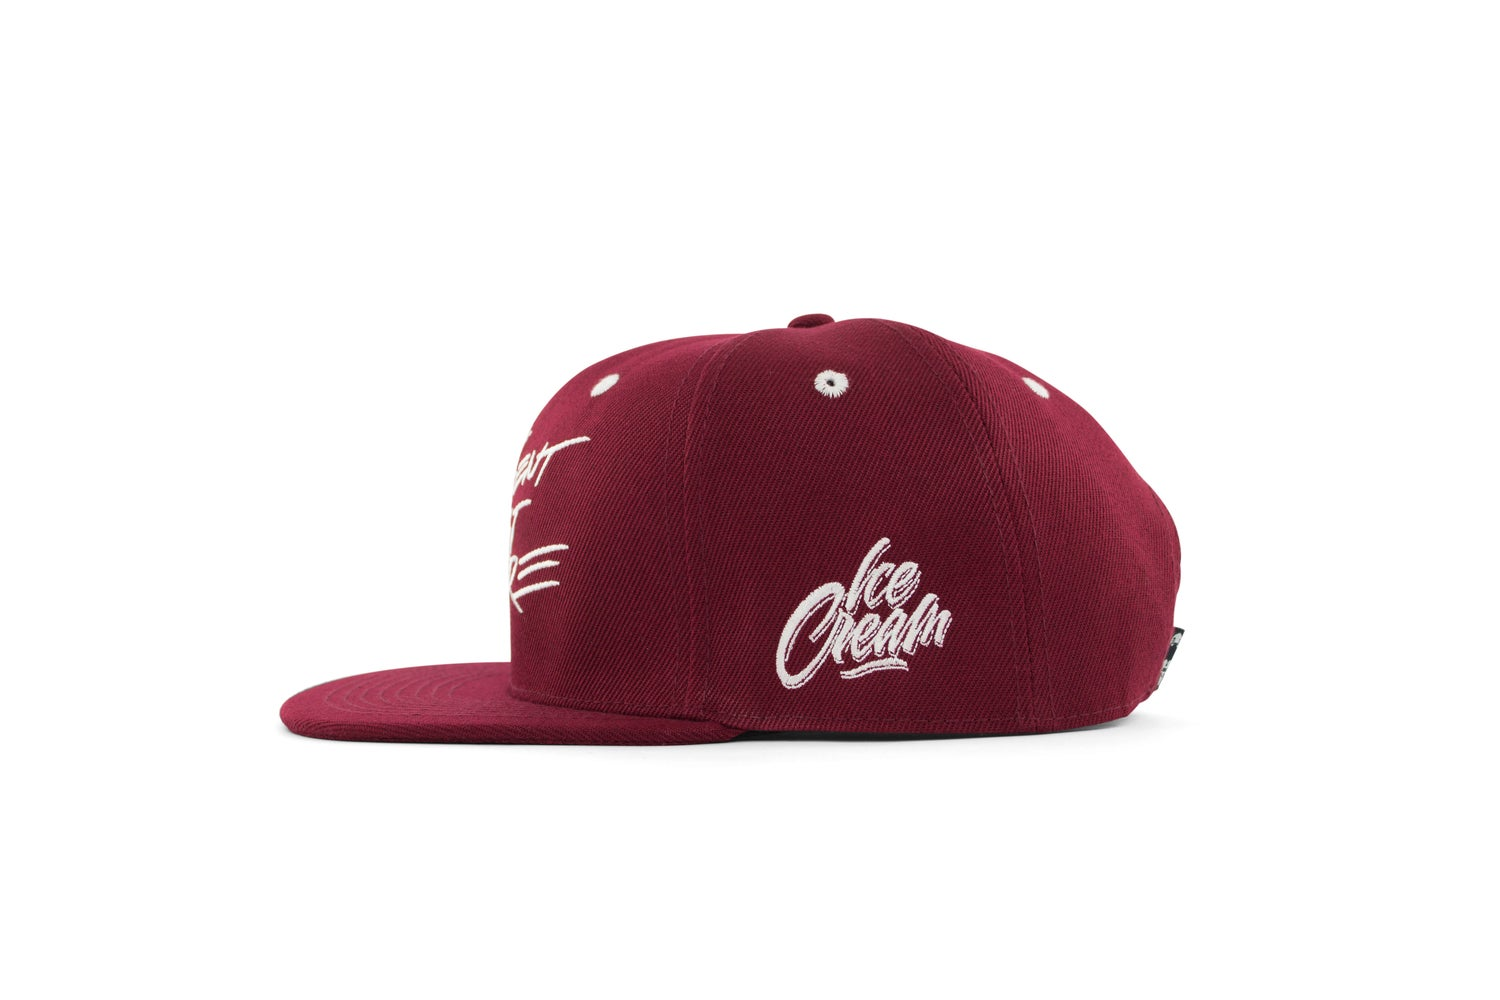 Image of Zonders Past, Present & Future Snapback, burgundy